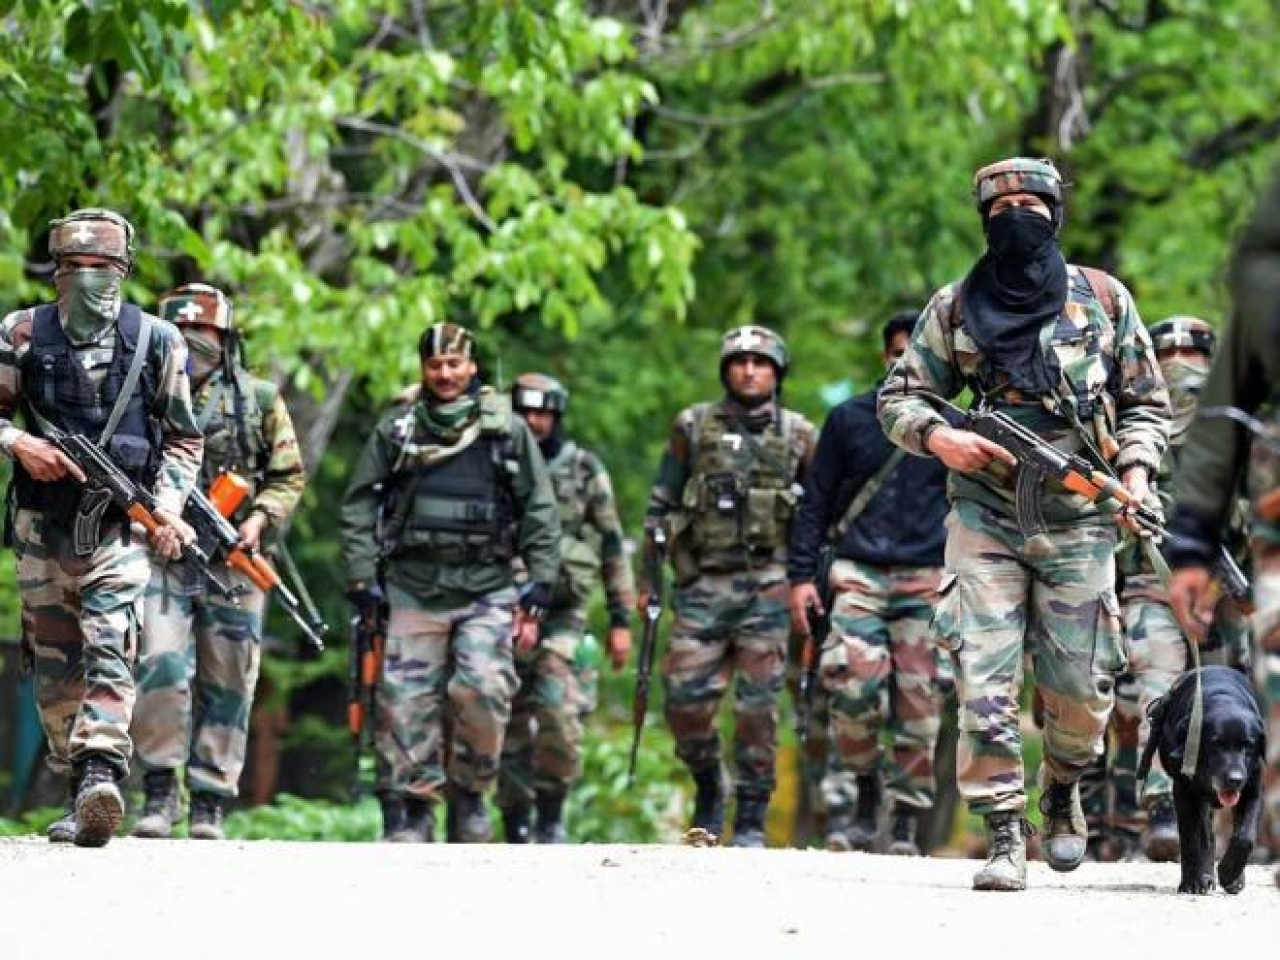 Jammu And Kashmir: Security Forces Gun Down Three Hizbul Mujahideen Terrorists In An Encounter In Pulwama